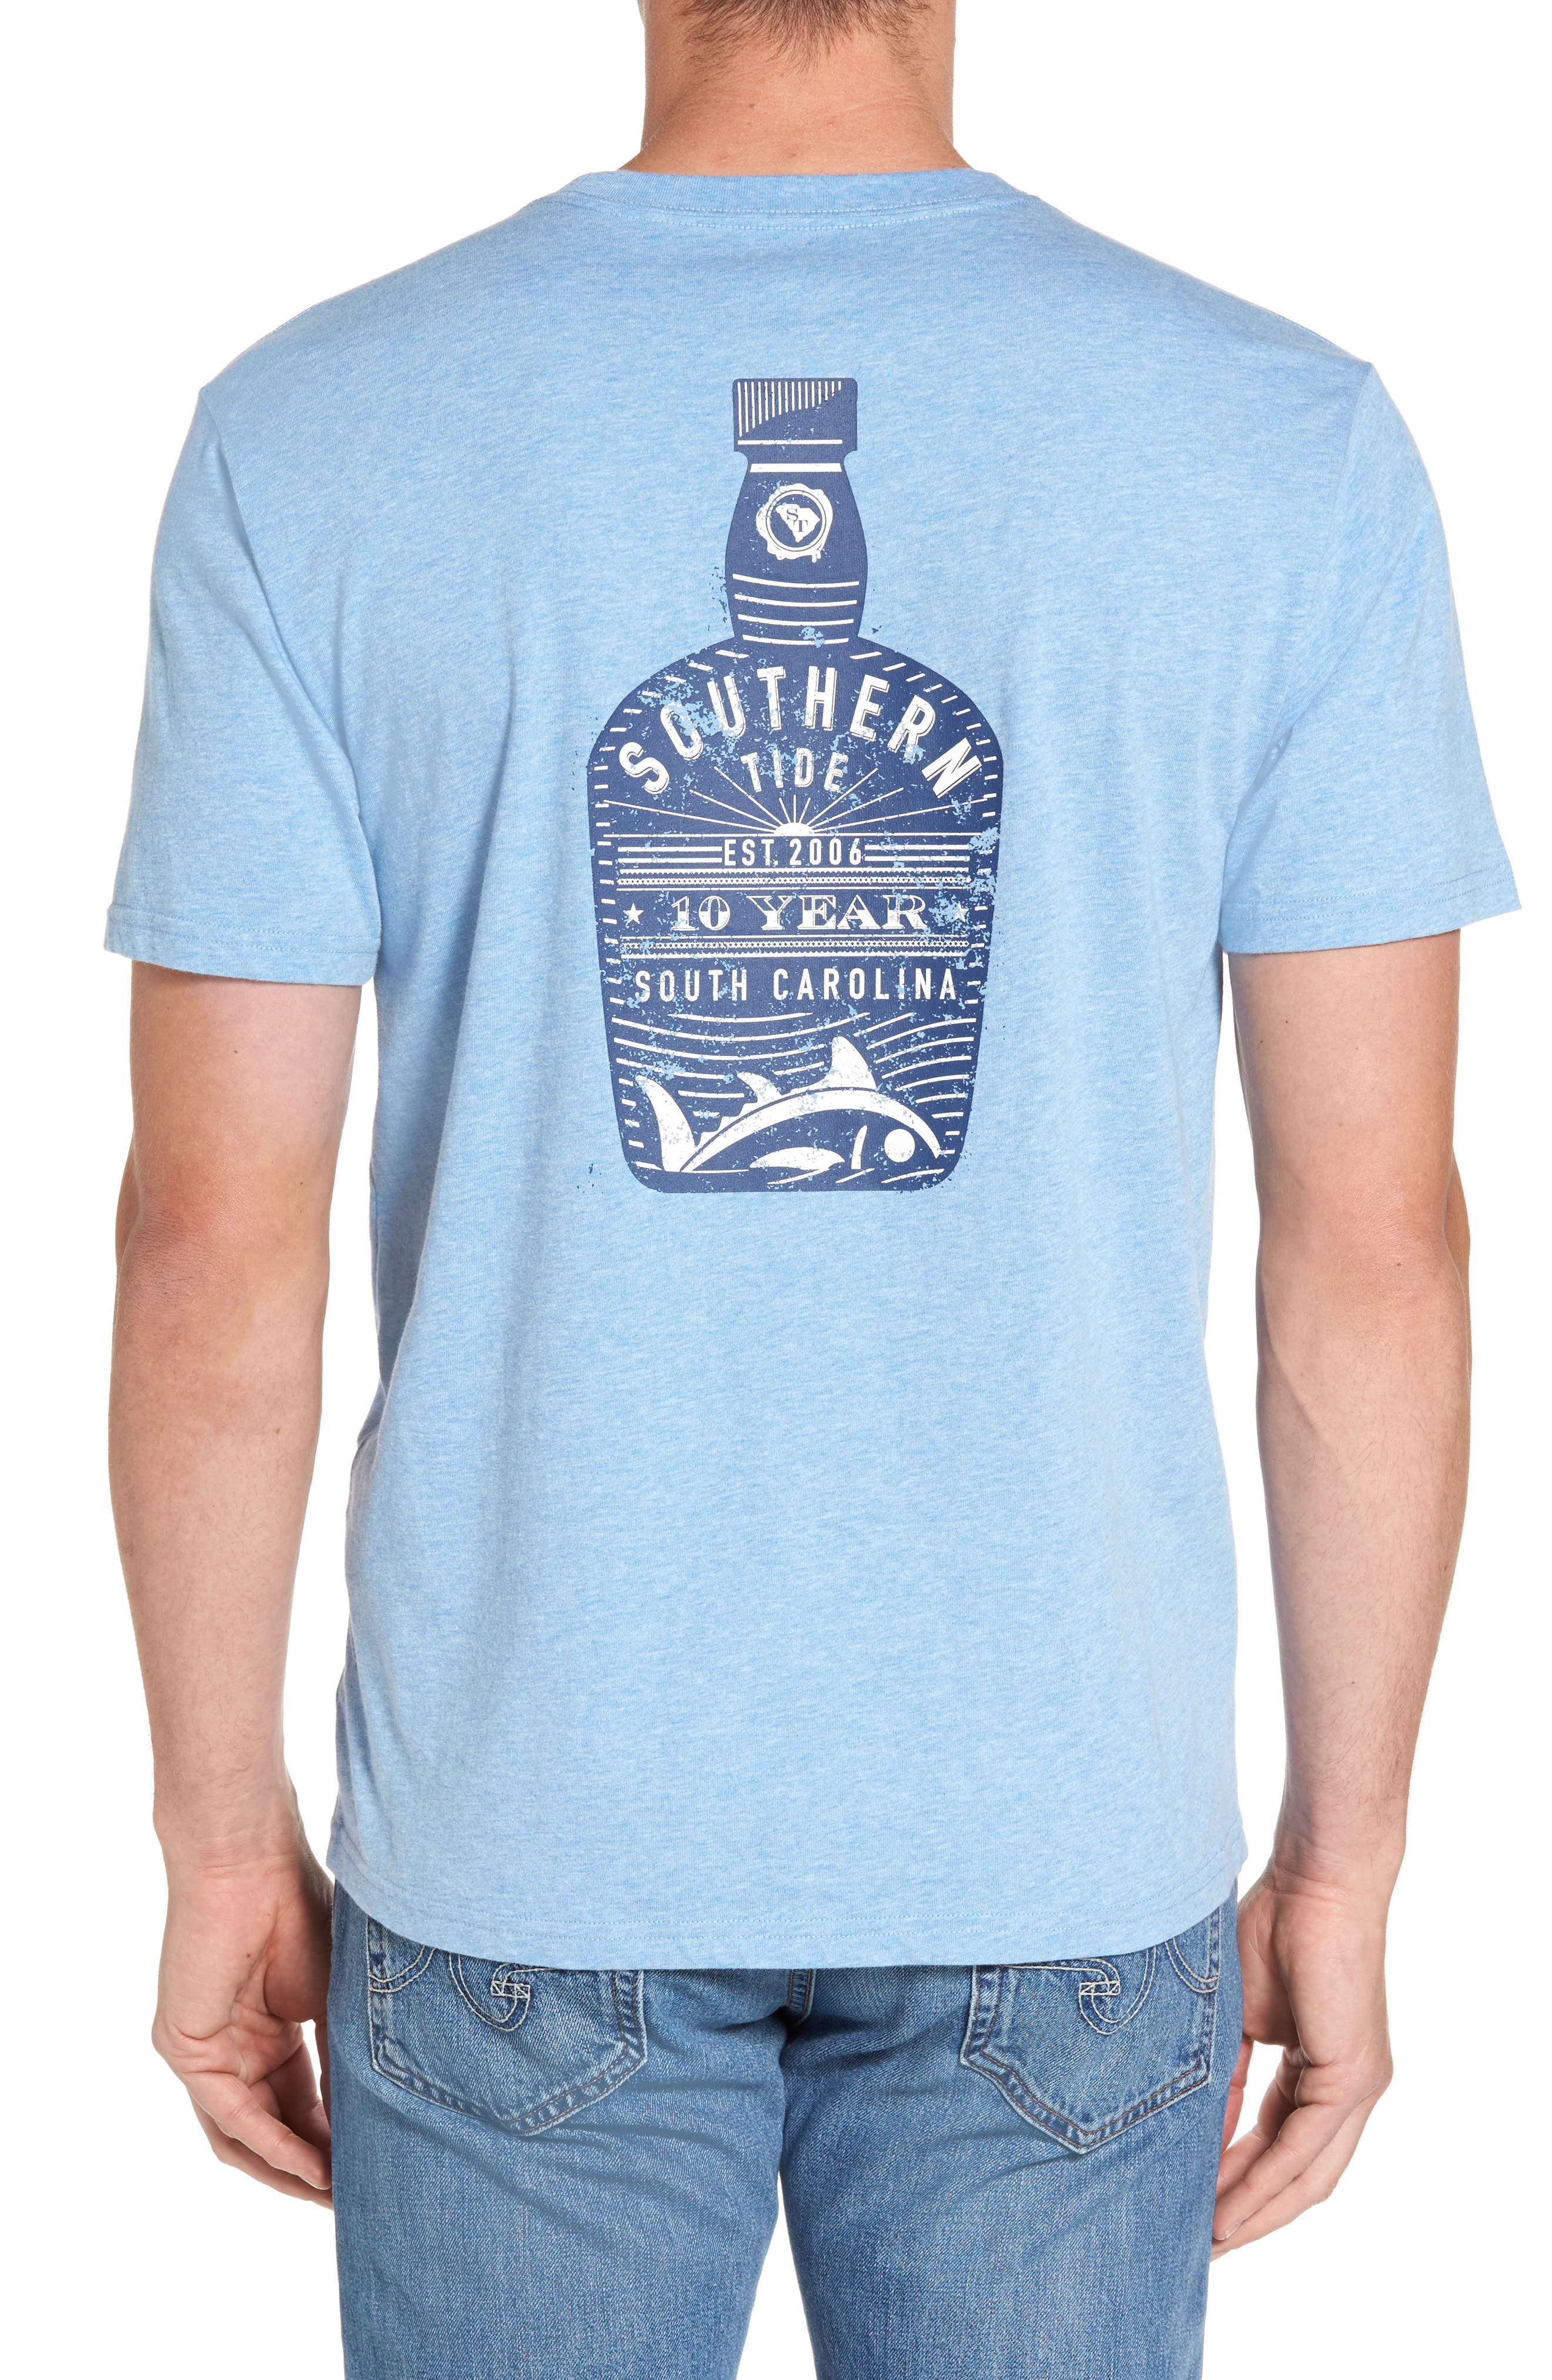 Main Image - Southern Tide Bourbon Bottle Classic Fit Graphic T-Shirt